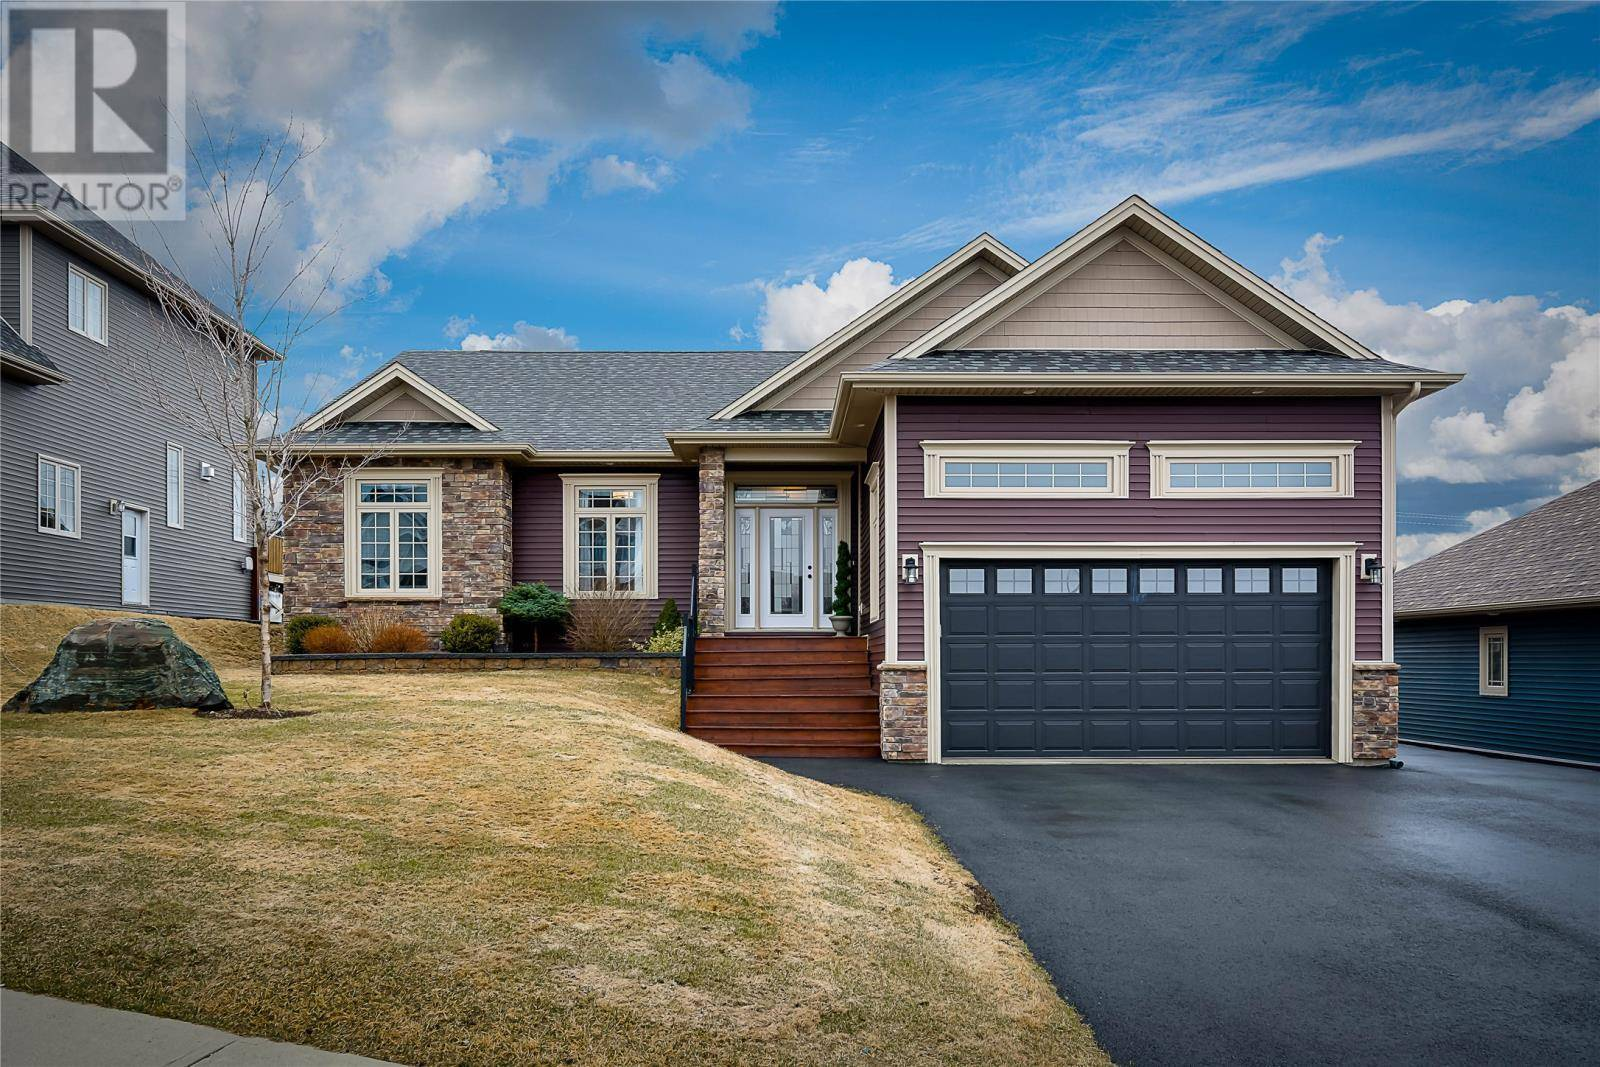 House for sale at 6 Stonegate Cres Mount Pearl Newfoundland - MLS: 1205011